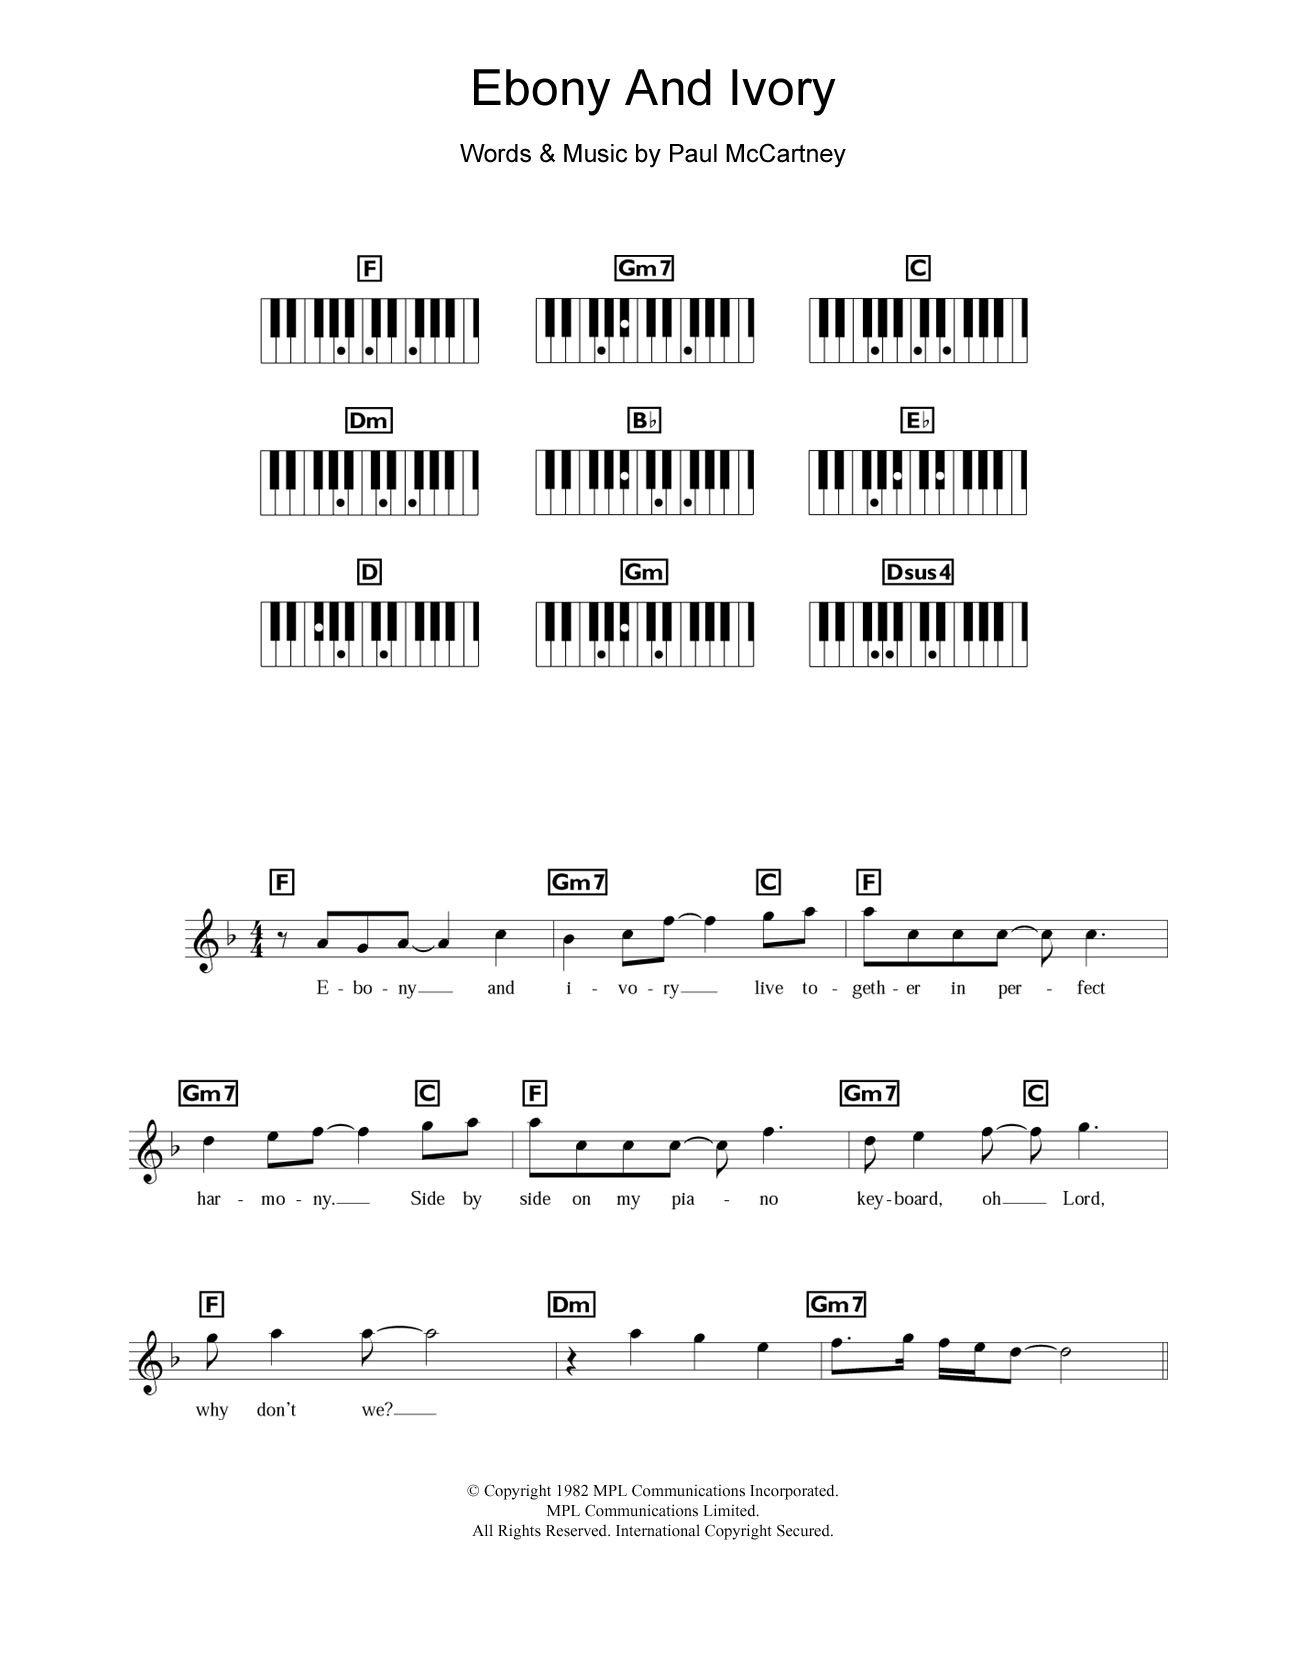 Ebony And Ivory Sheet Music